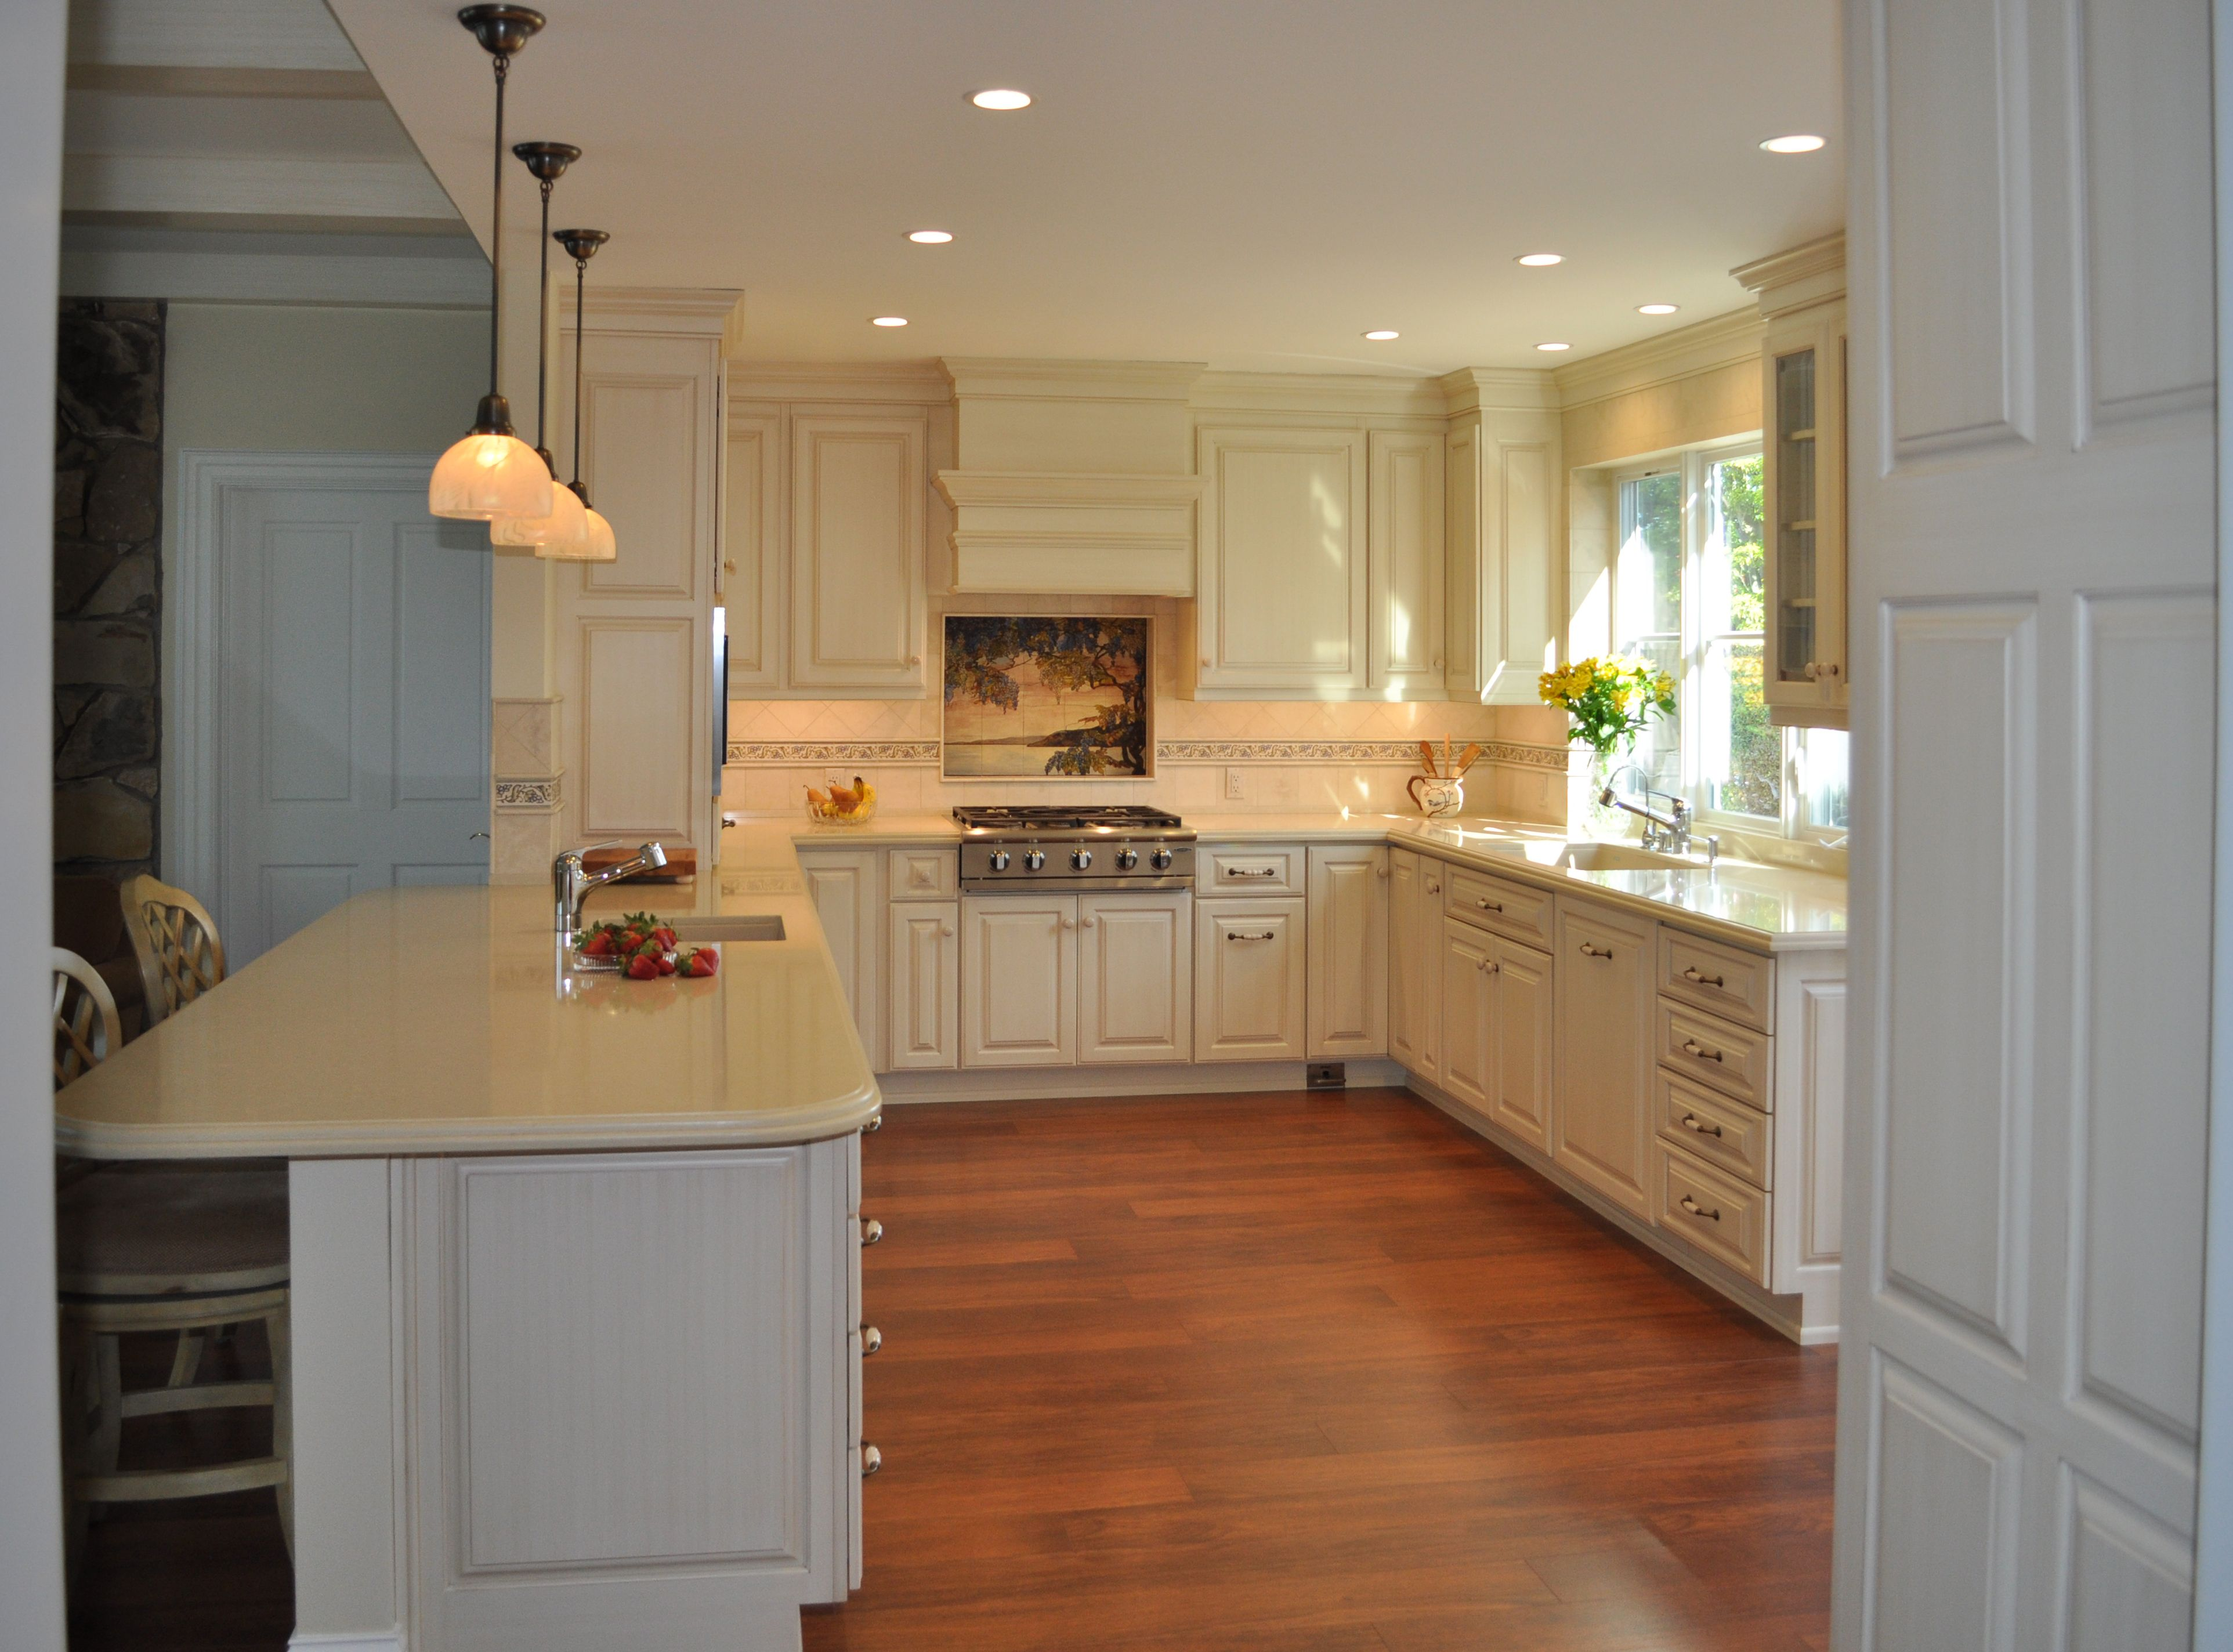 After  Ushape Kitchen More Space And Storage Took Out The Awesome Garden Kitchen Design Inspiration